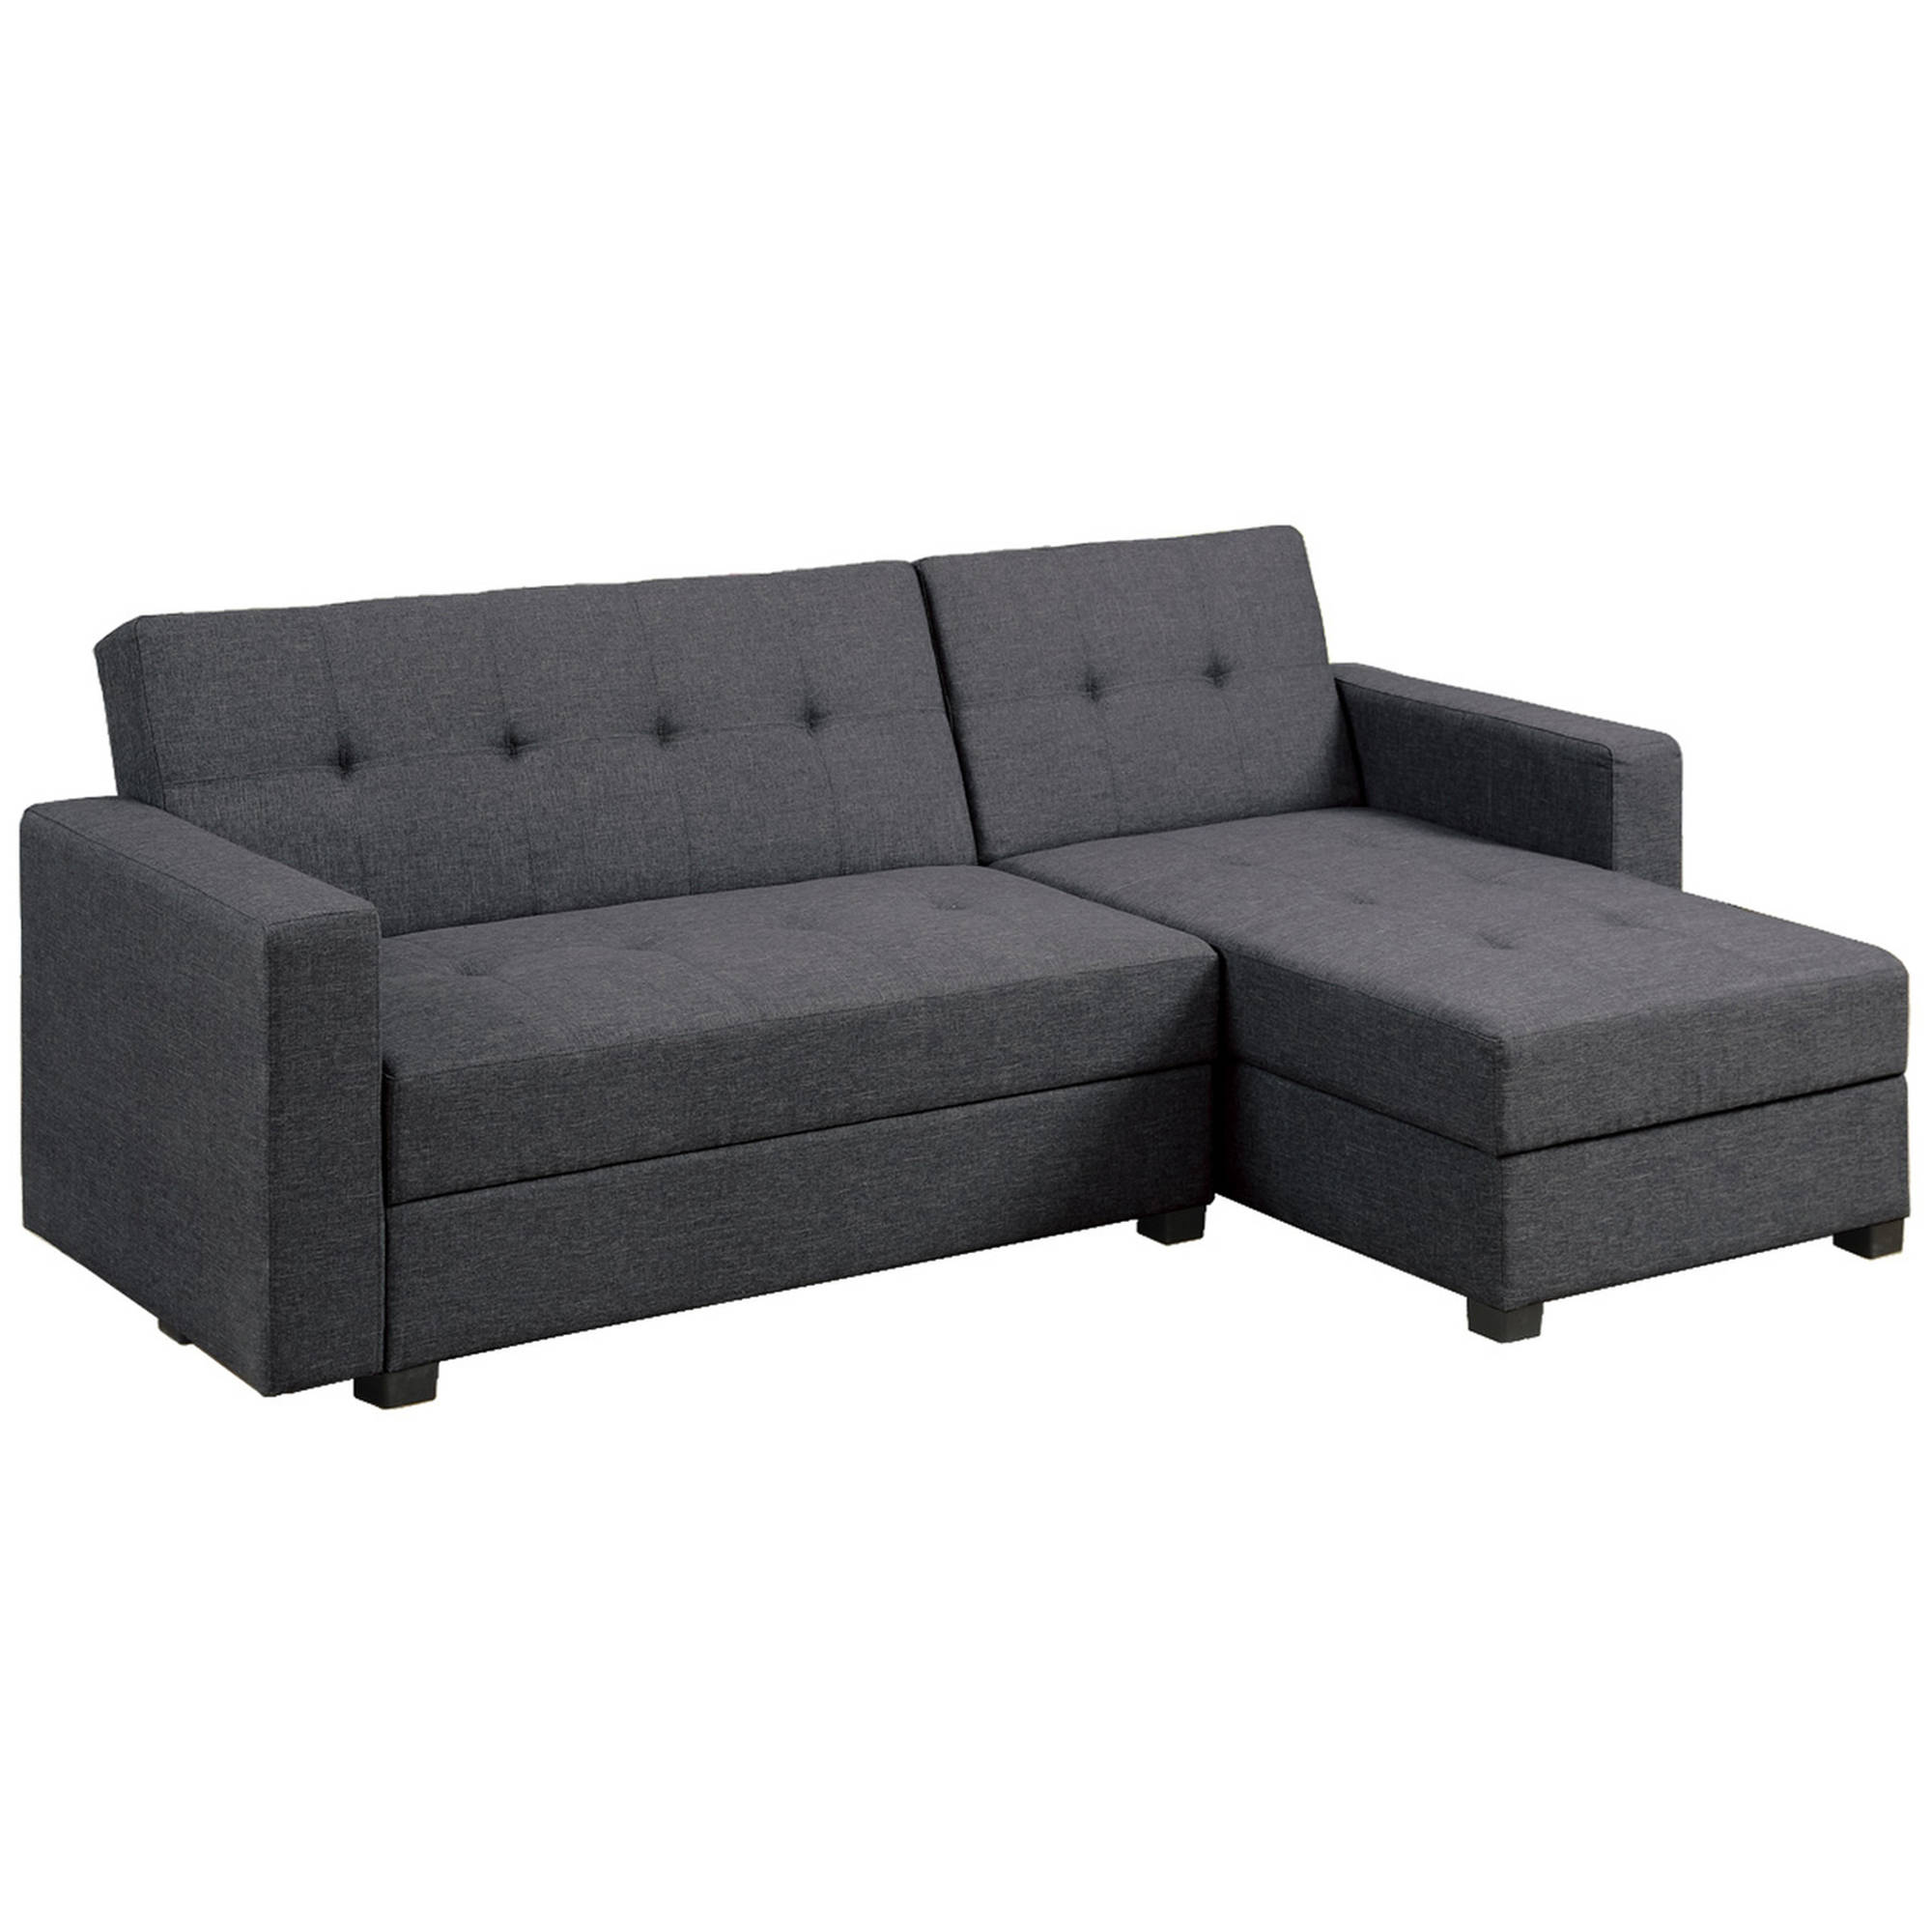 Bobkona Medora Linen-Like Polyfabric Left or Right Hand Chaise Adjustable Sectional with Compartment by Poundex